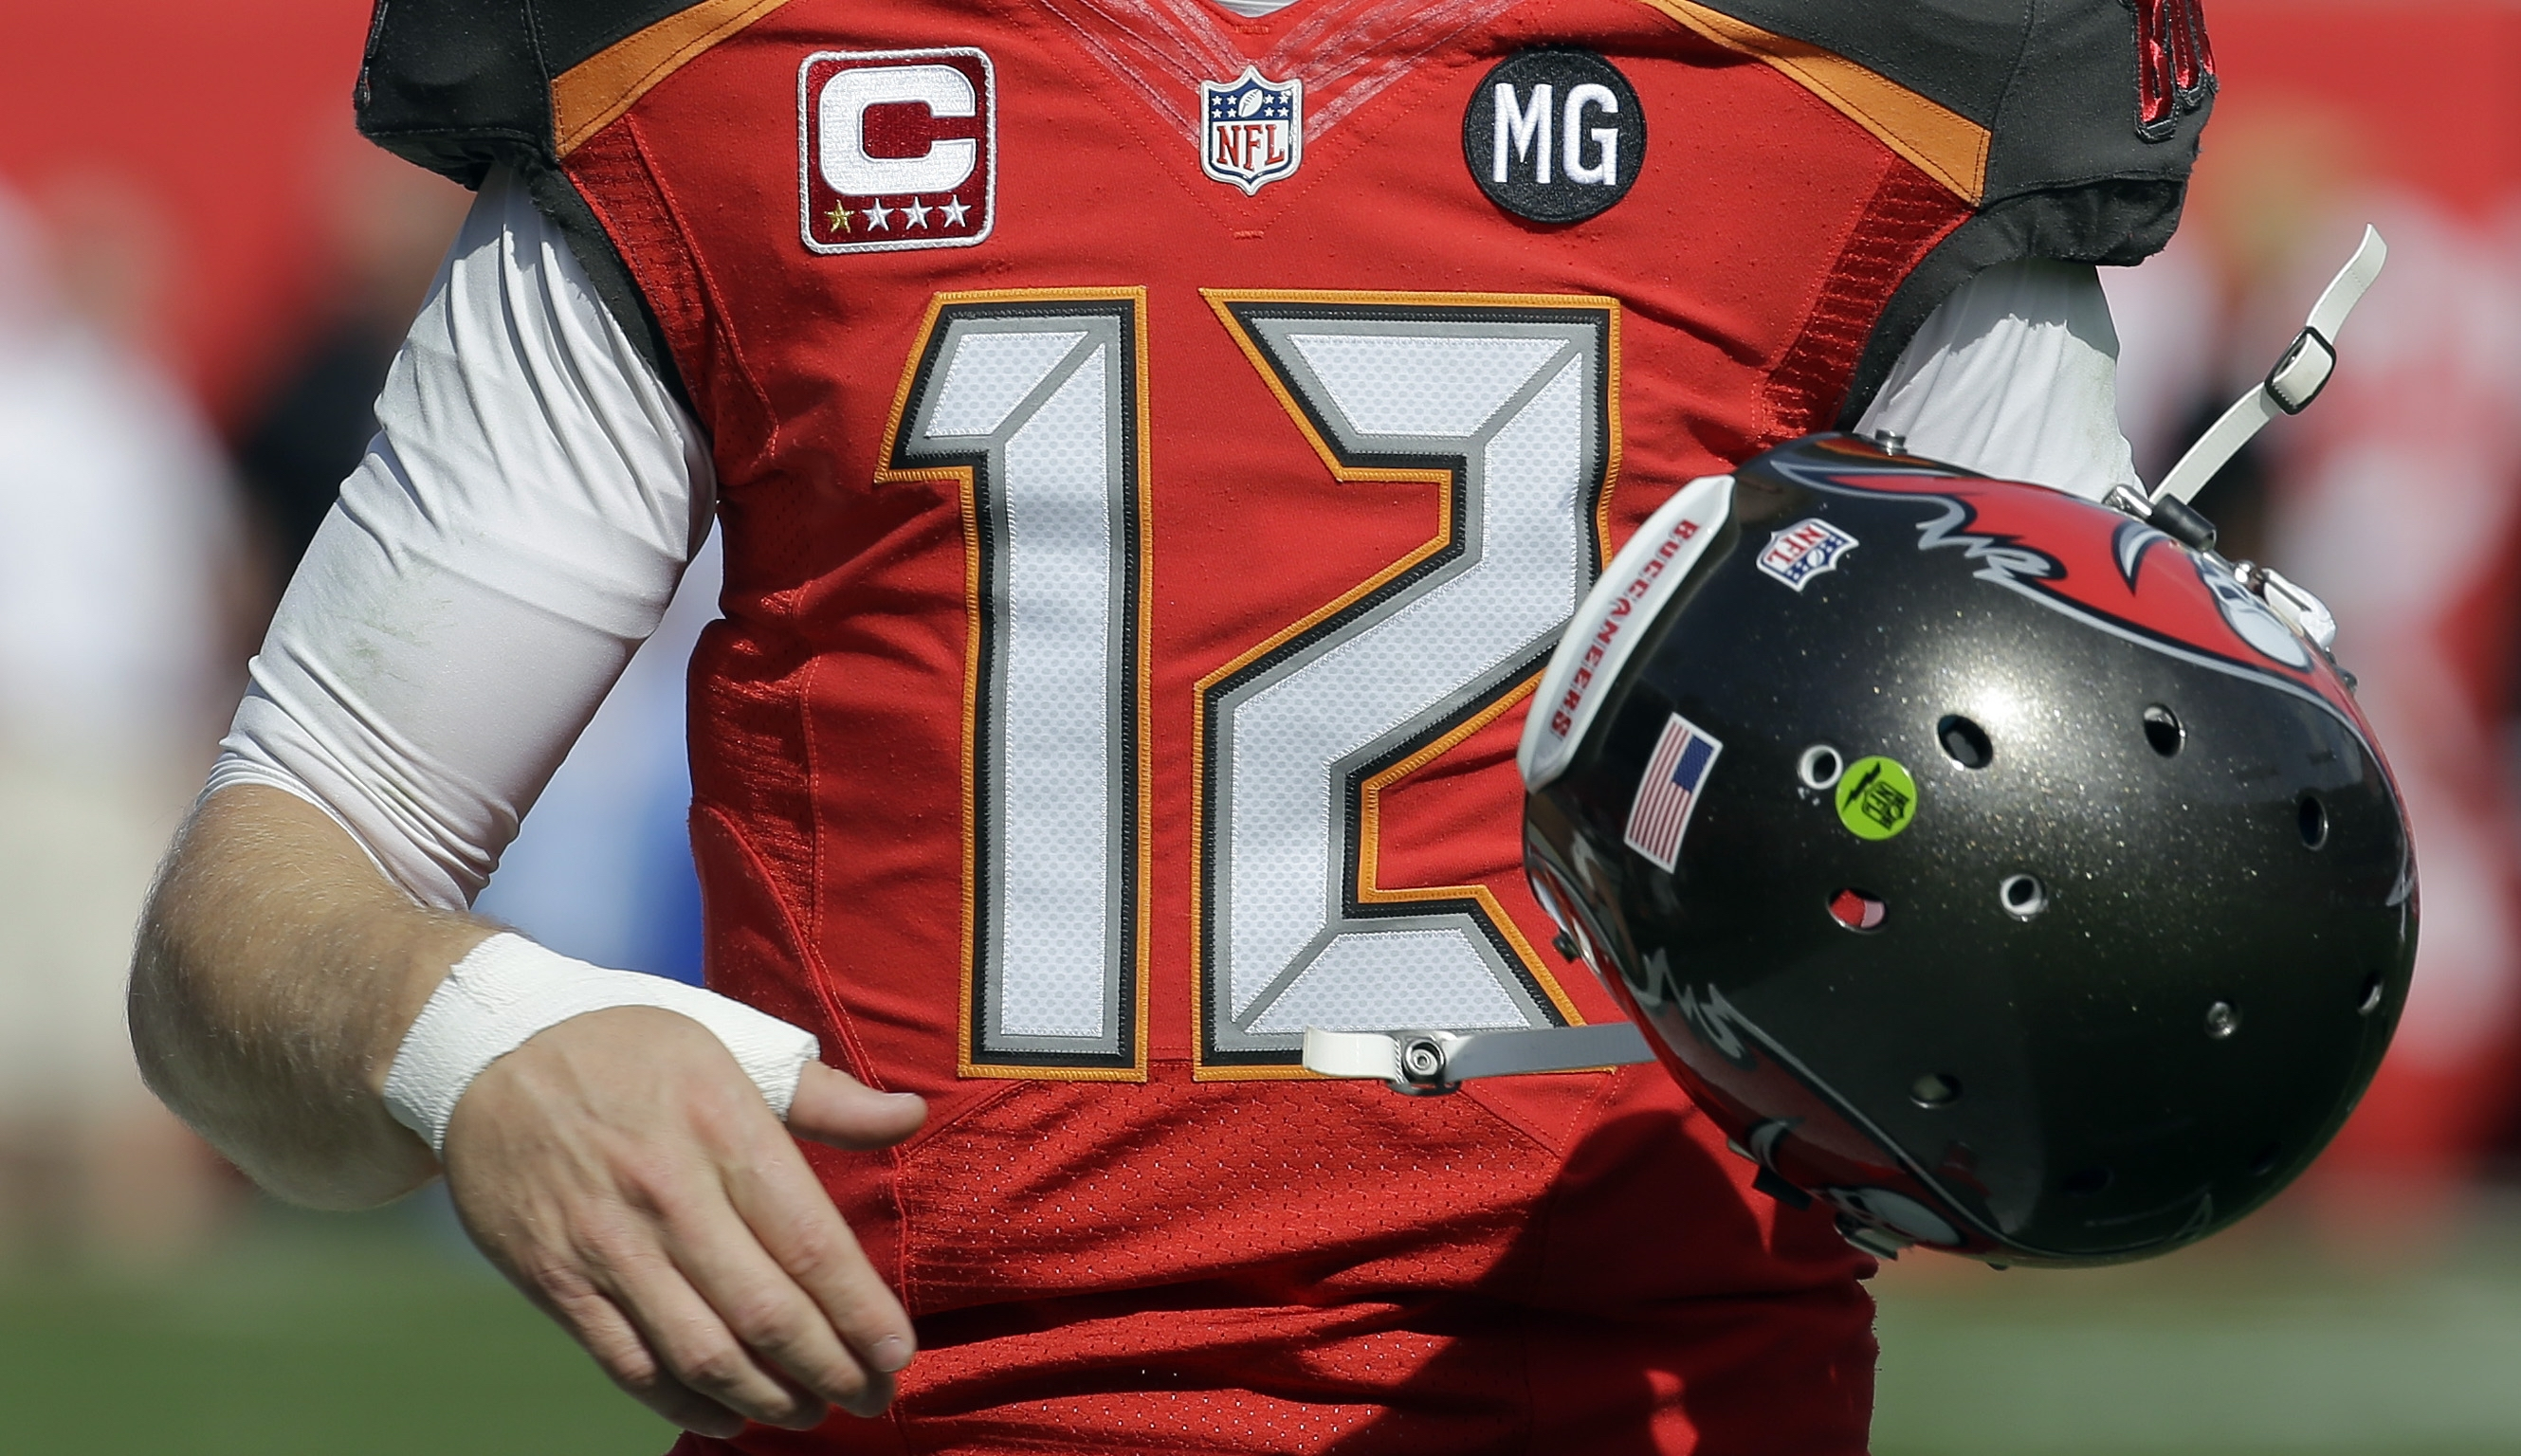 A Tom Brady Buccaneers Jersey Reported Deal Gives Qb S Apparel First Color Scheme In 20 Years Masslive Com